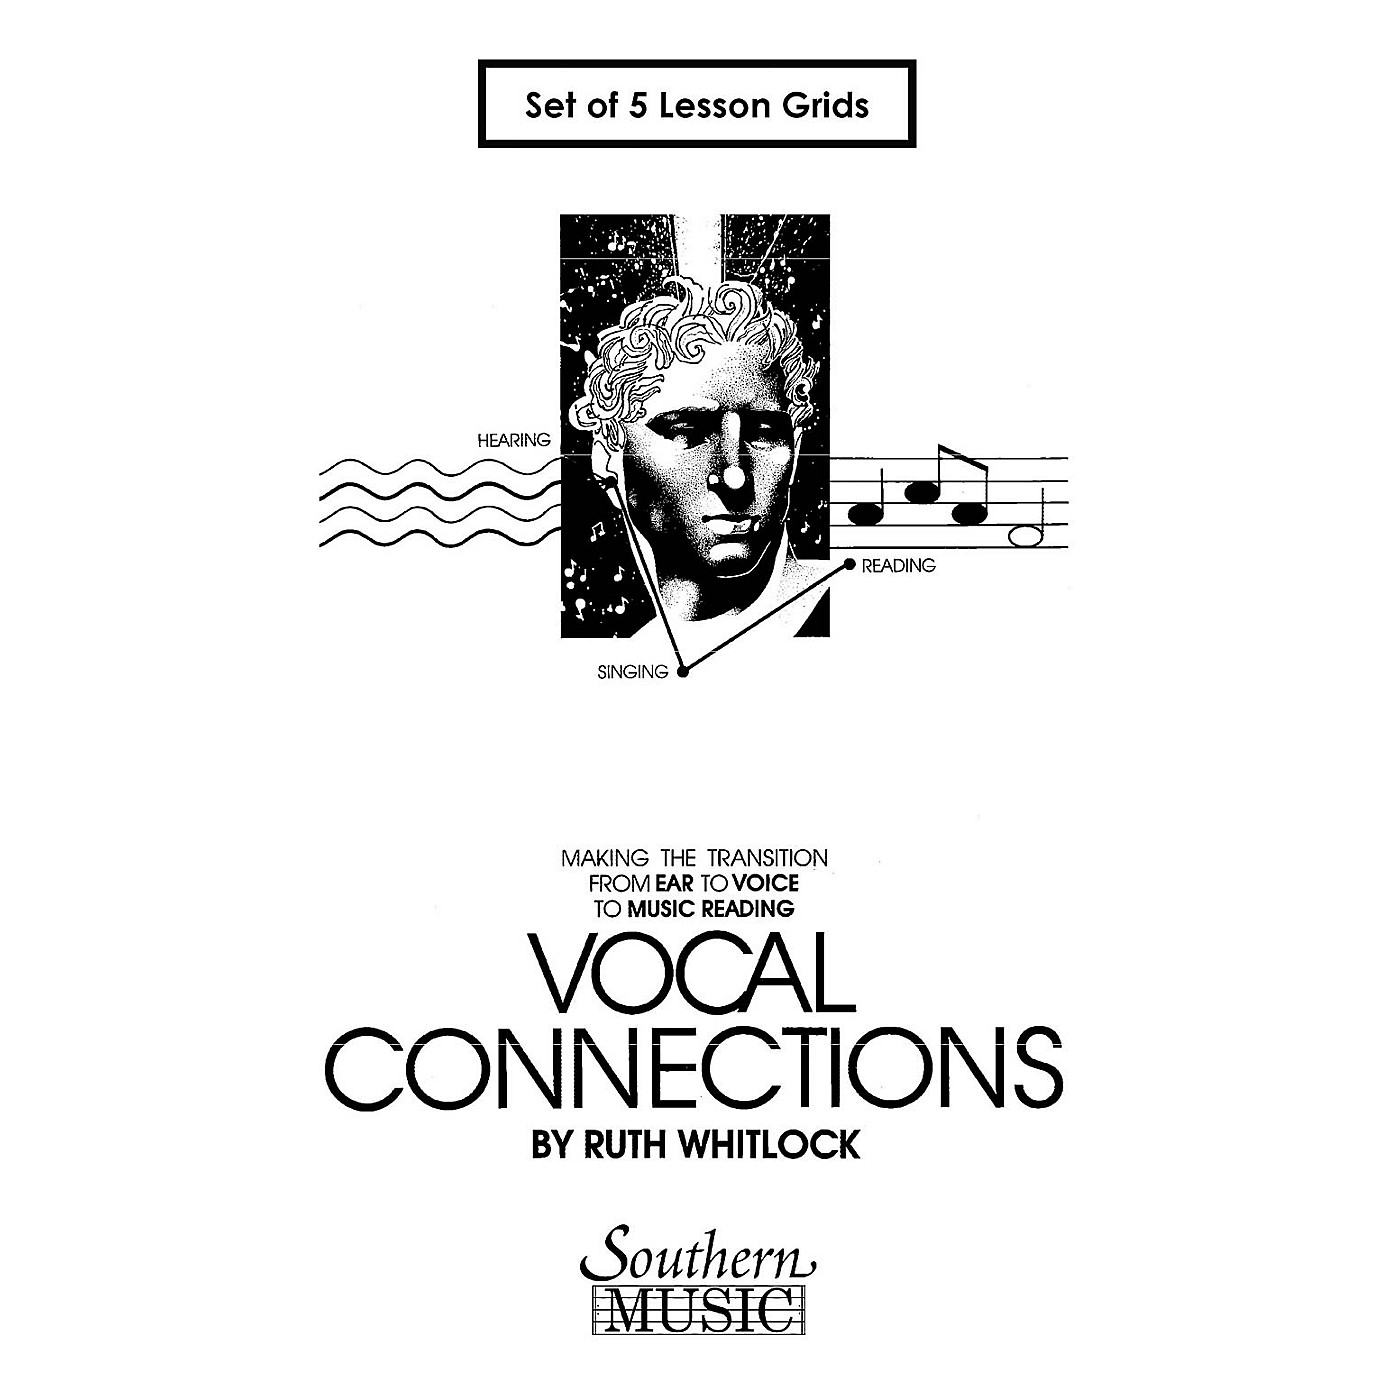 Hal Leonard Vocal Connections, Grids (Choral Music/Choral Method - Sigh) Composed by Whitlock, Ruth thumbnail